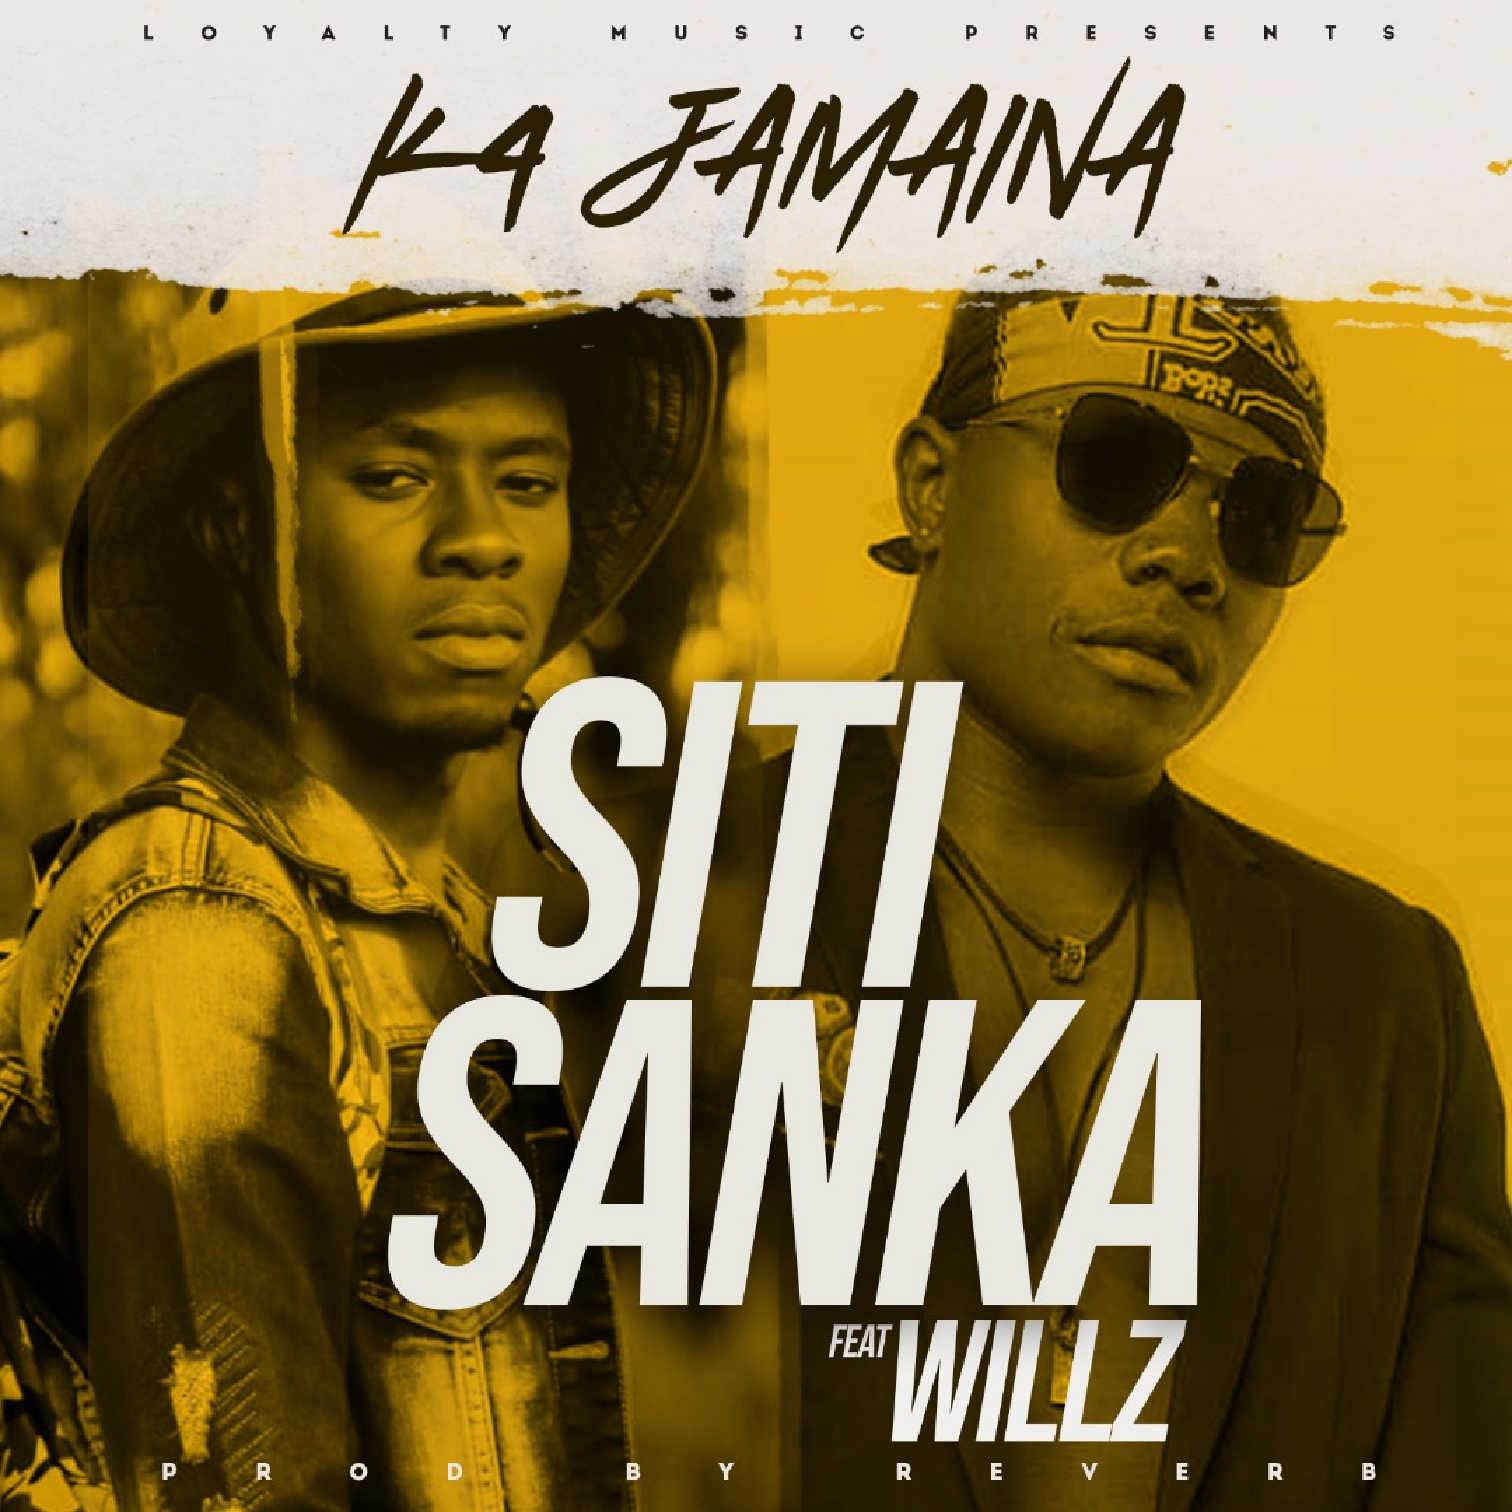 K4 Jamaina Ft. Willz Siti Sanka